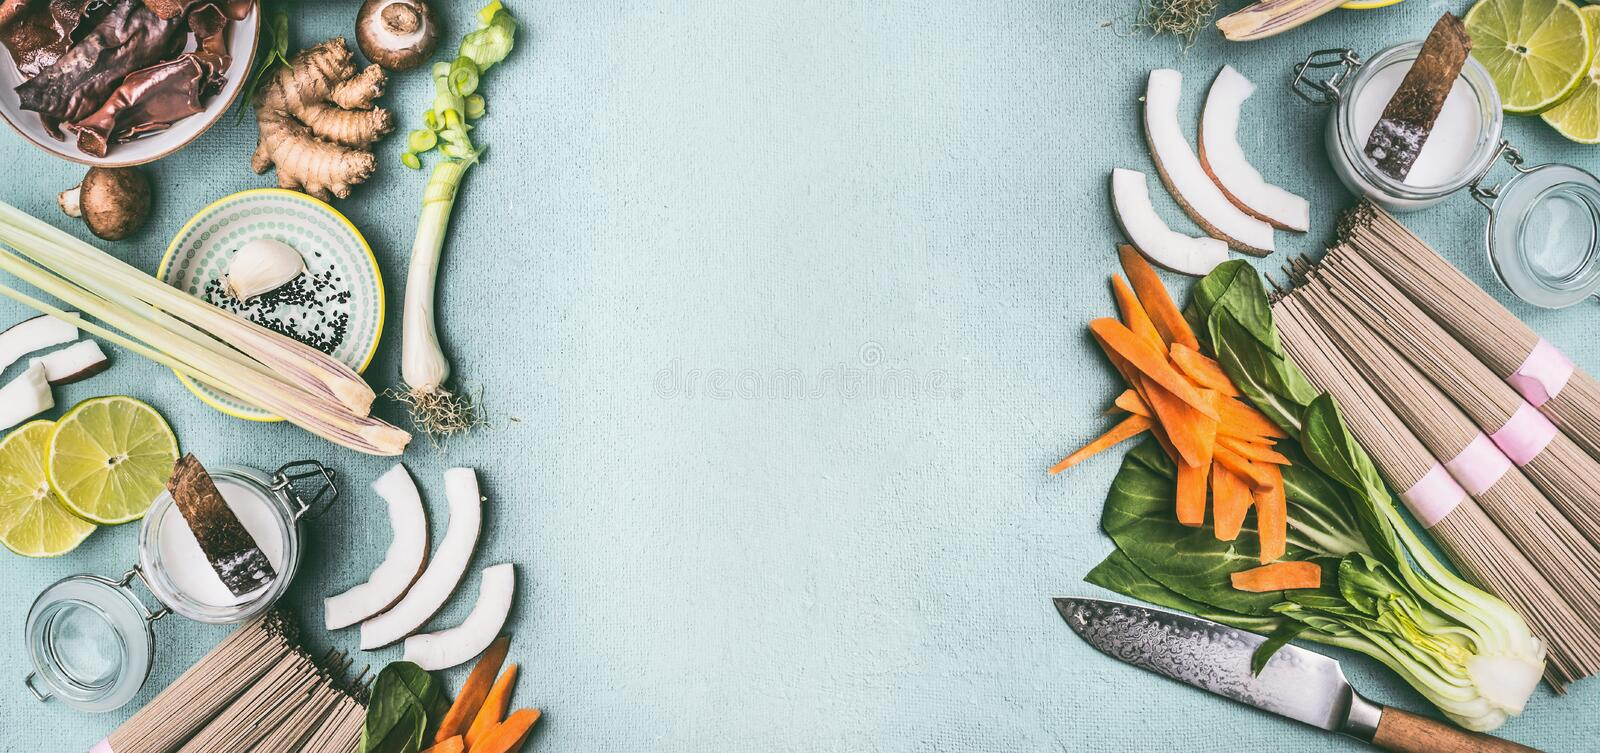 Asian food background frame with various traditional cooking ingredients: noodles, vegetables and spices, top view, flat lay. stock photos